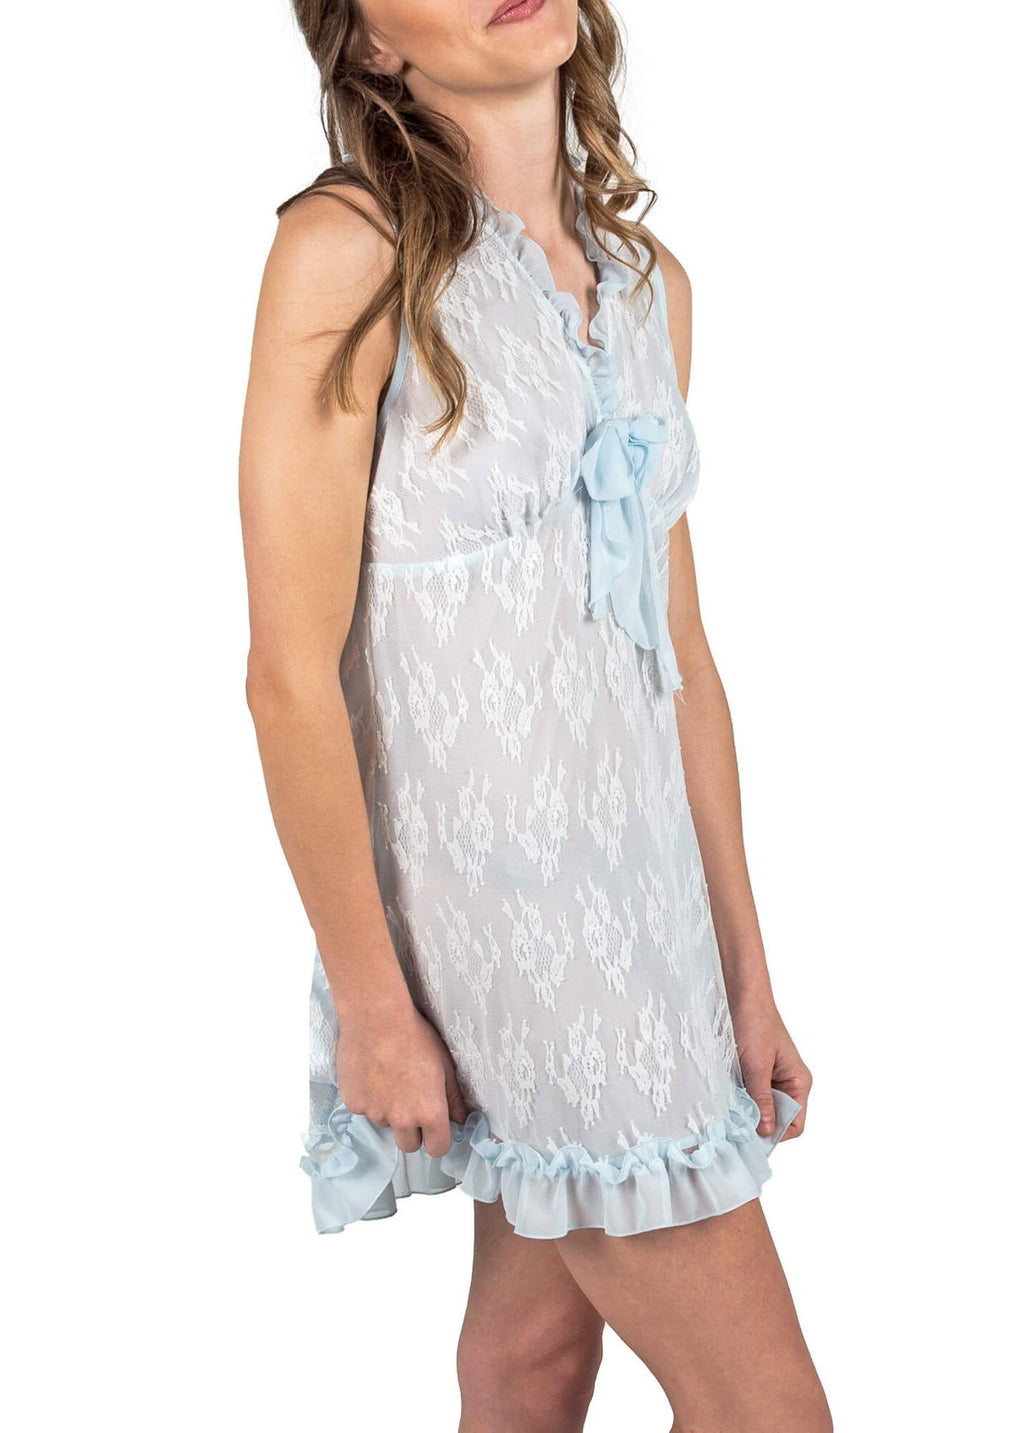 Chantilly Short Nightgown - Cloud Blue Mystique Intimates